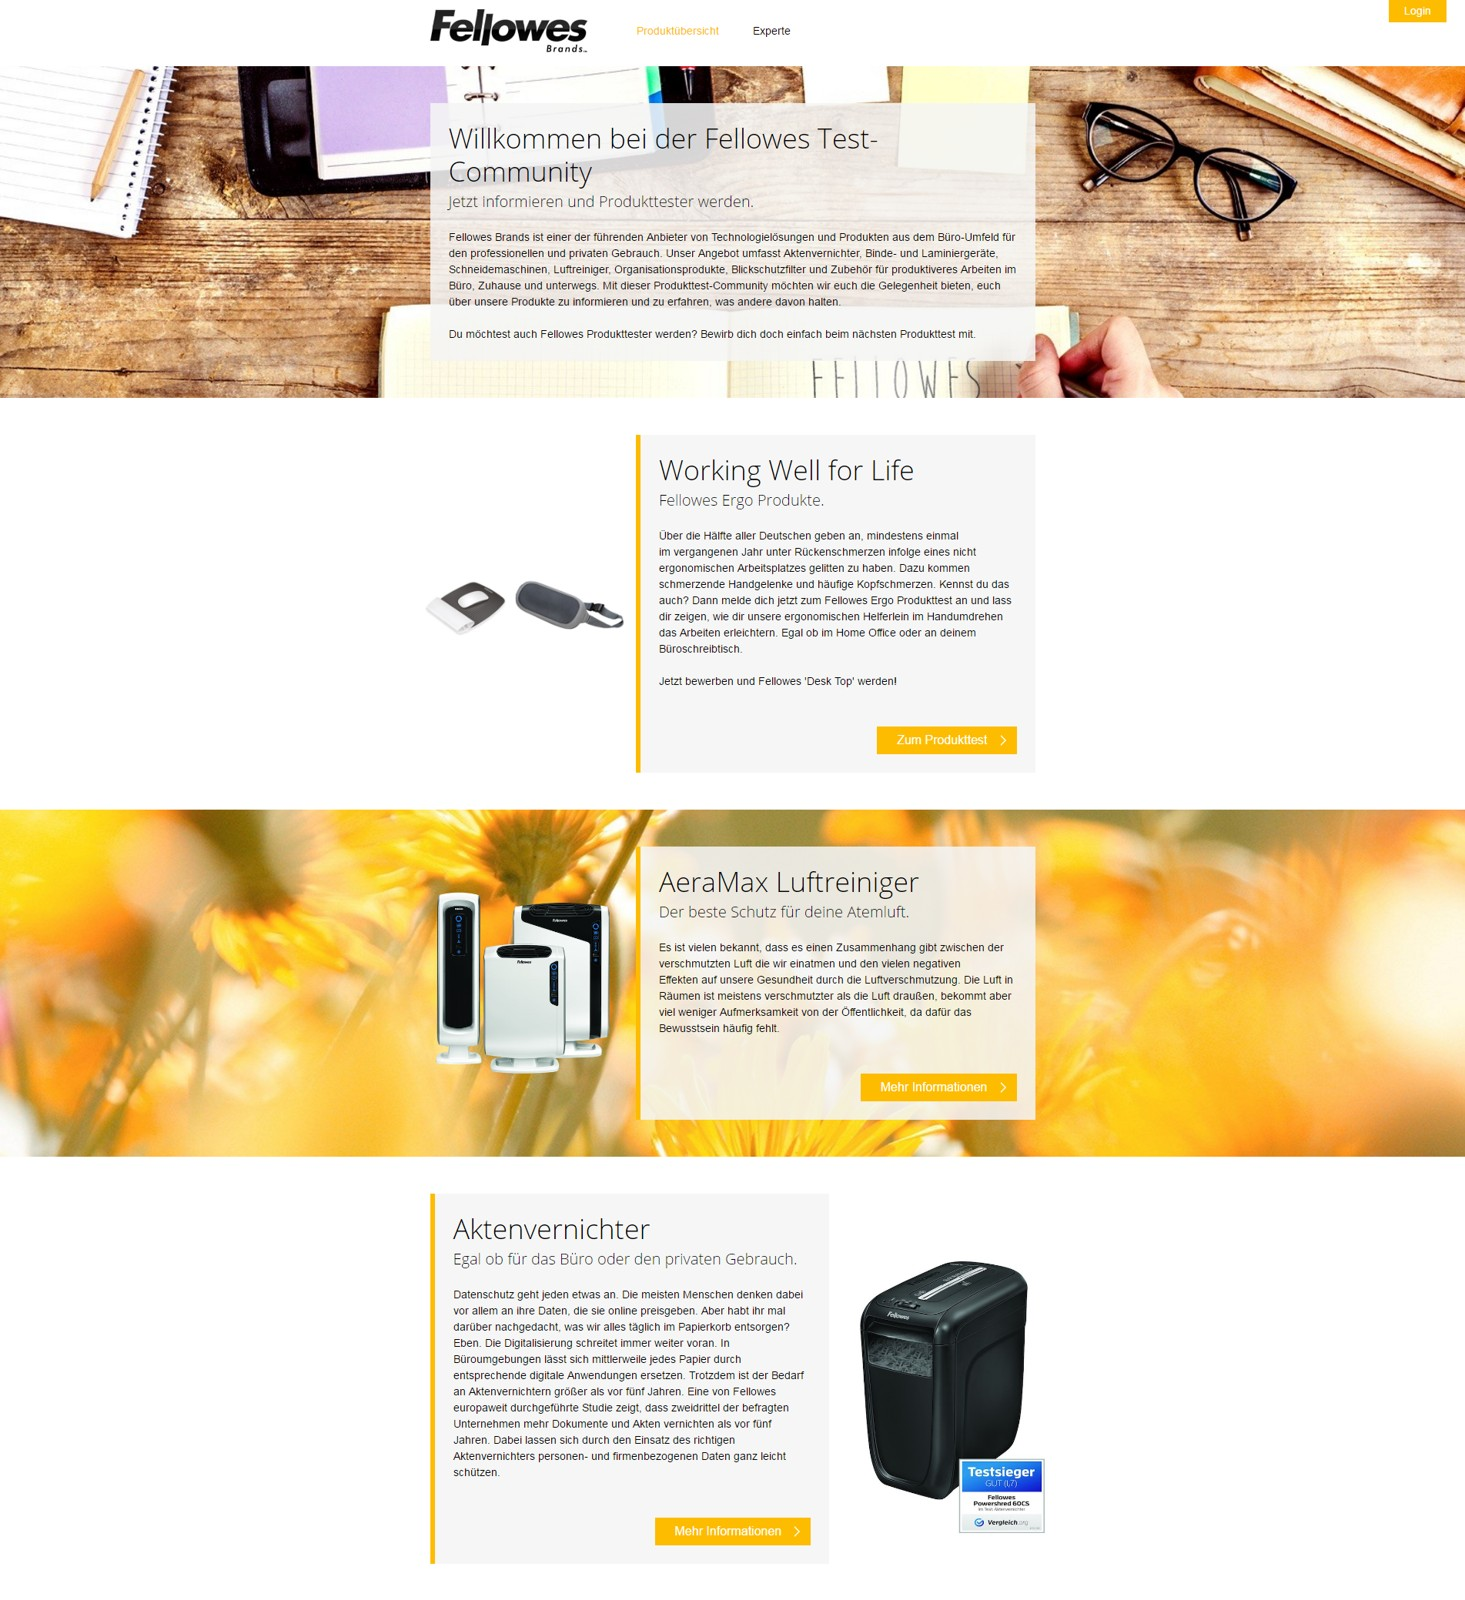 Fellowes Produkttests